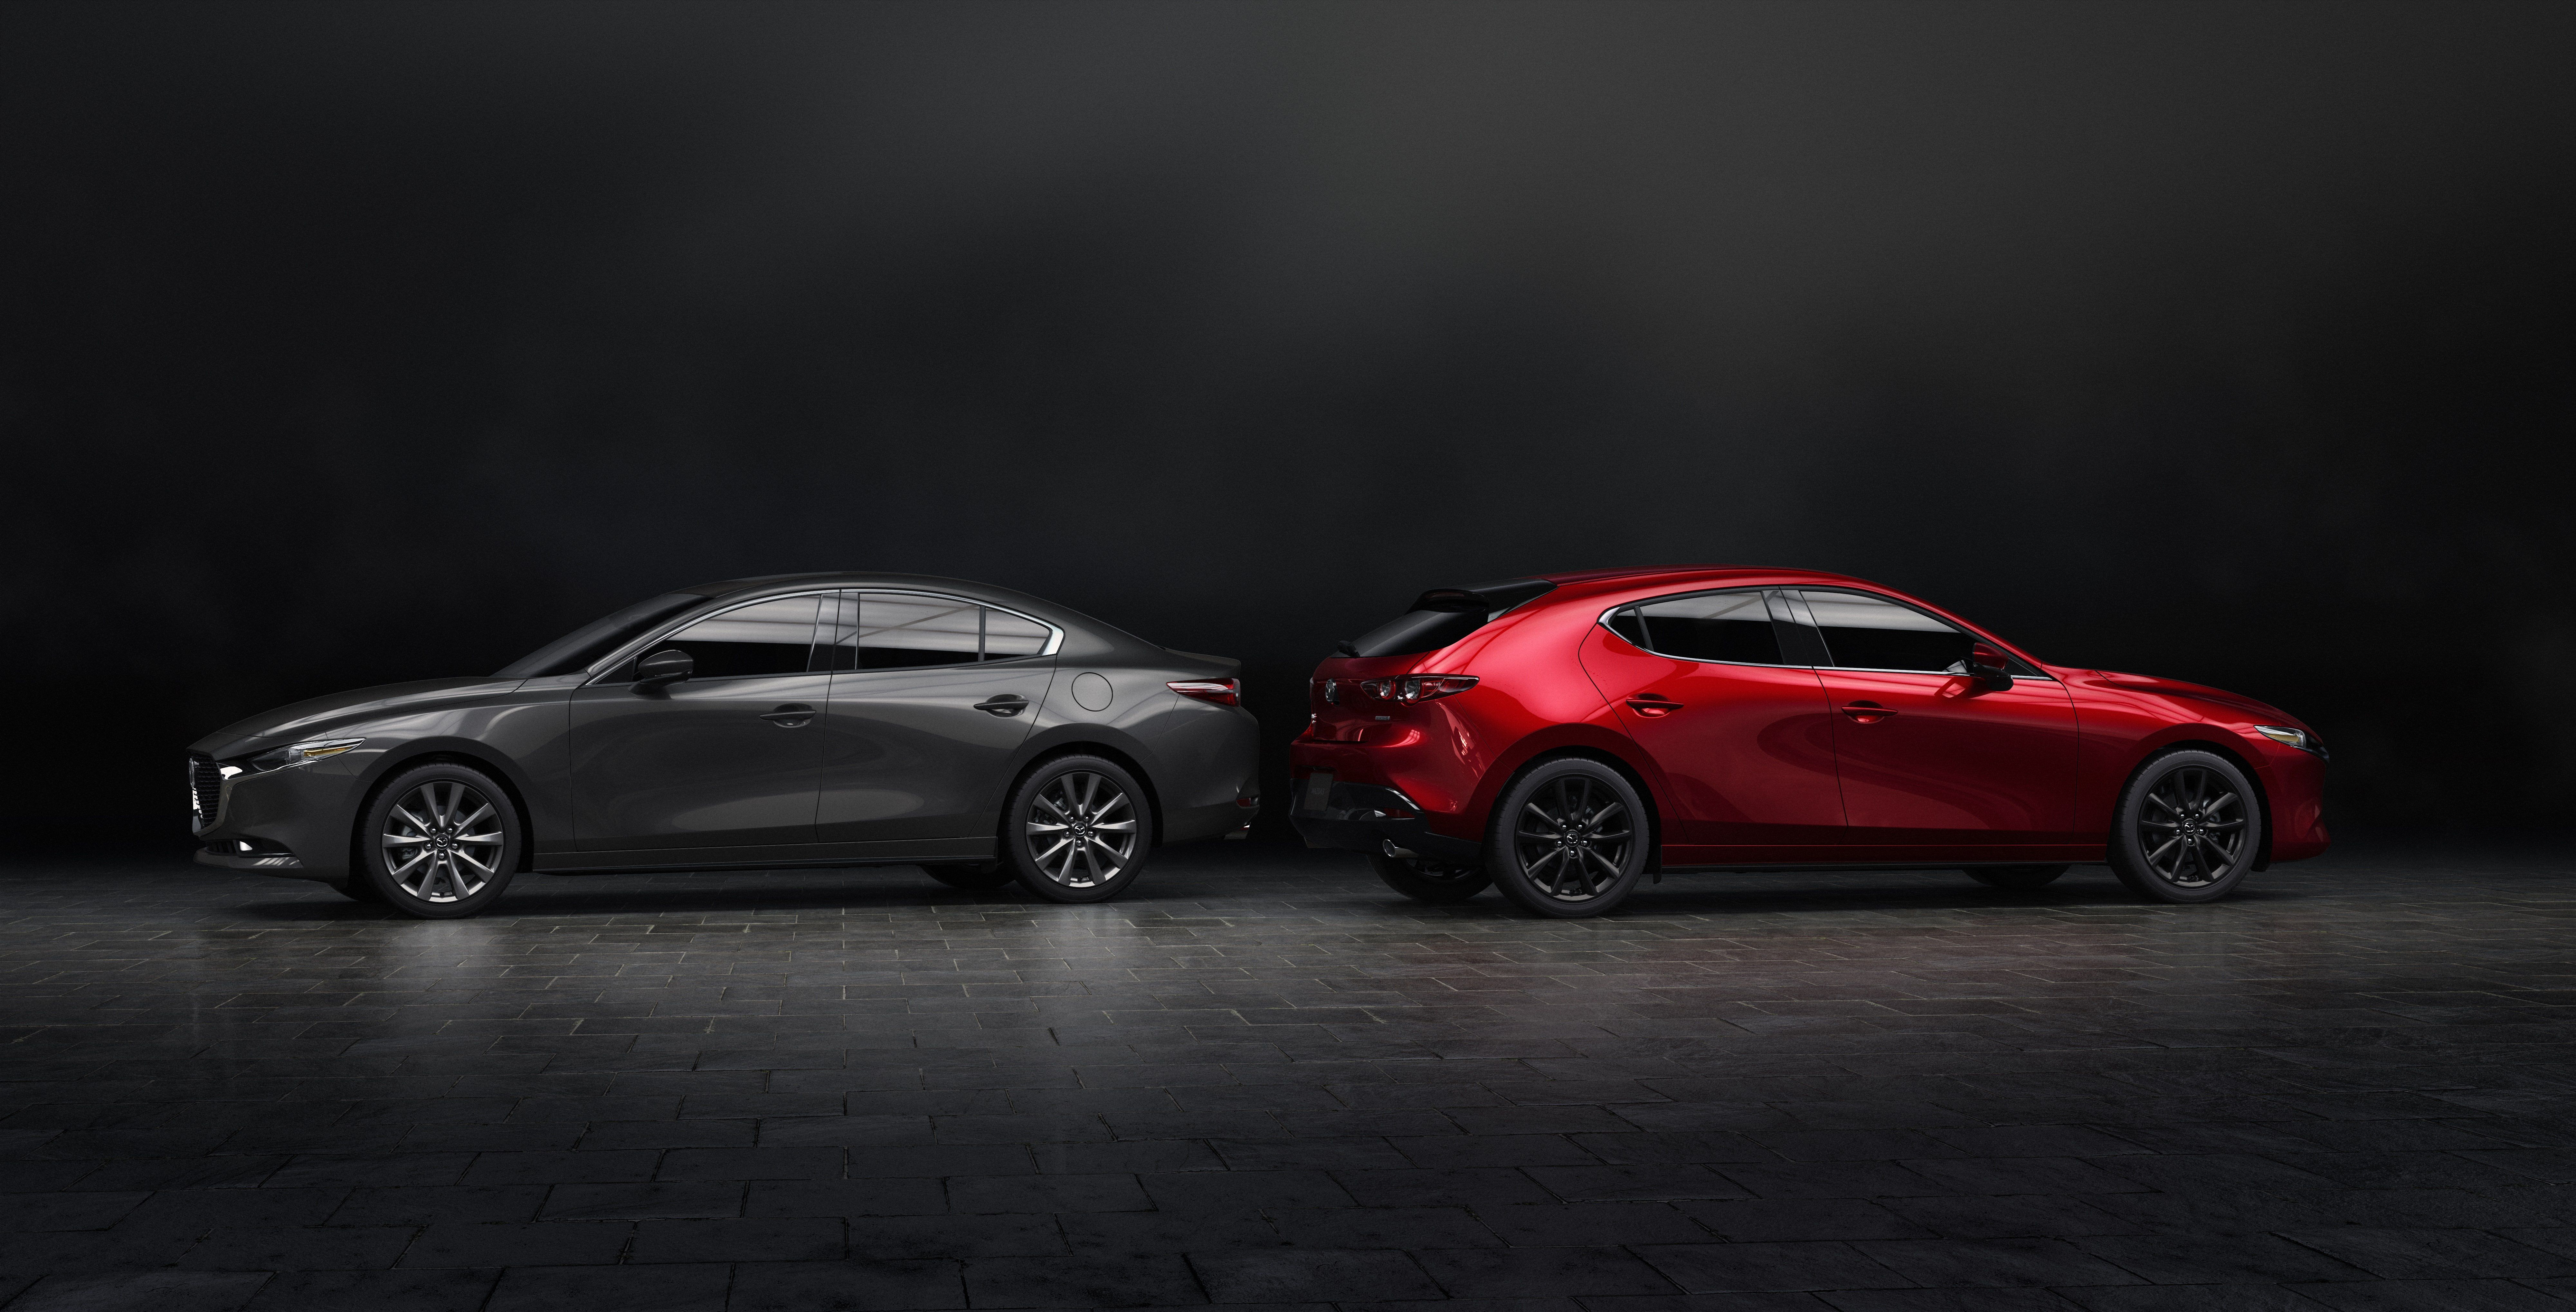 The New 2019 Mazda 3 Is Considerably More Expensive Than Before